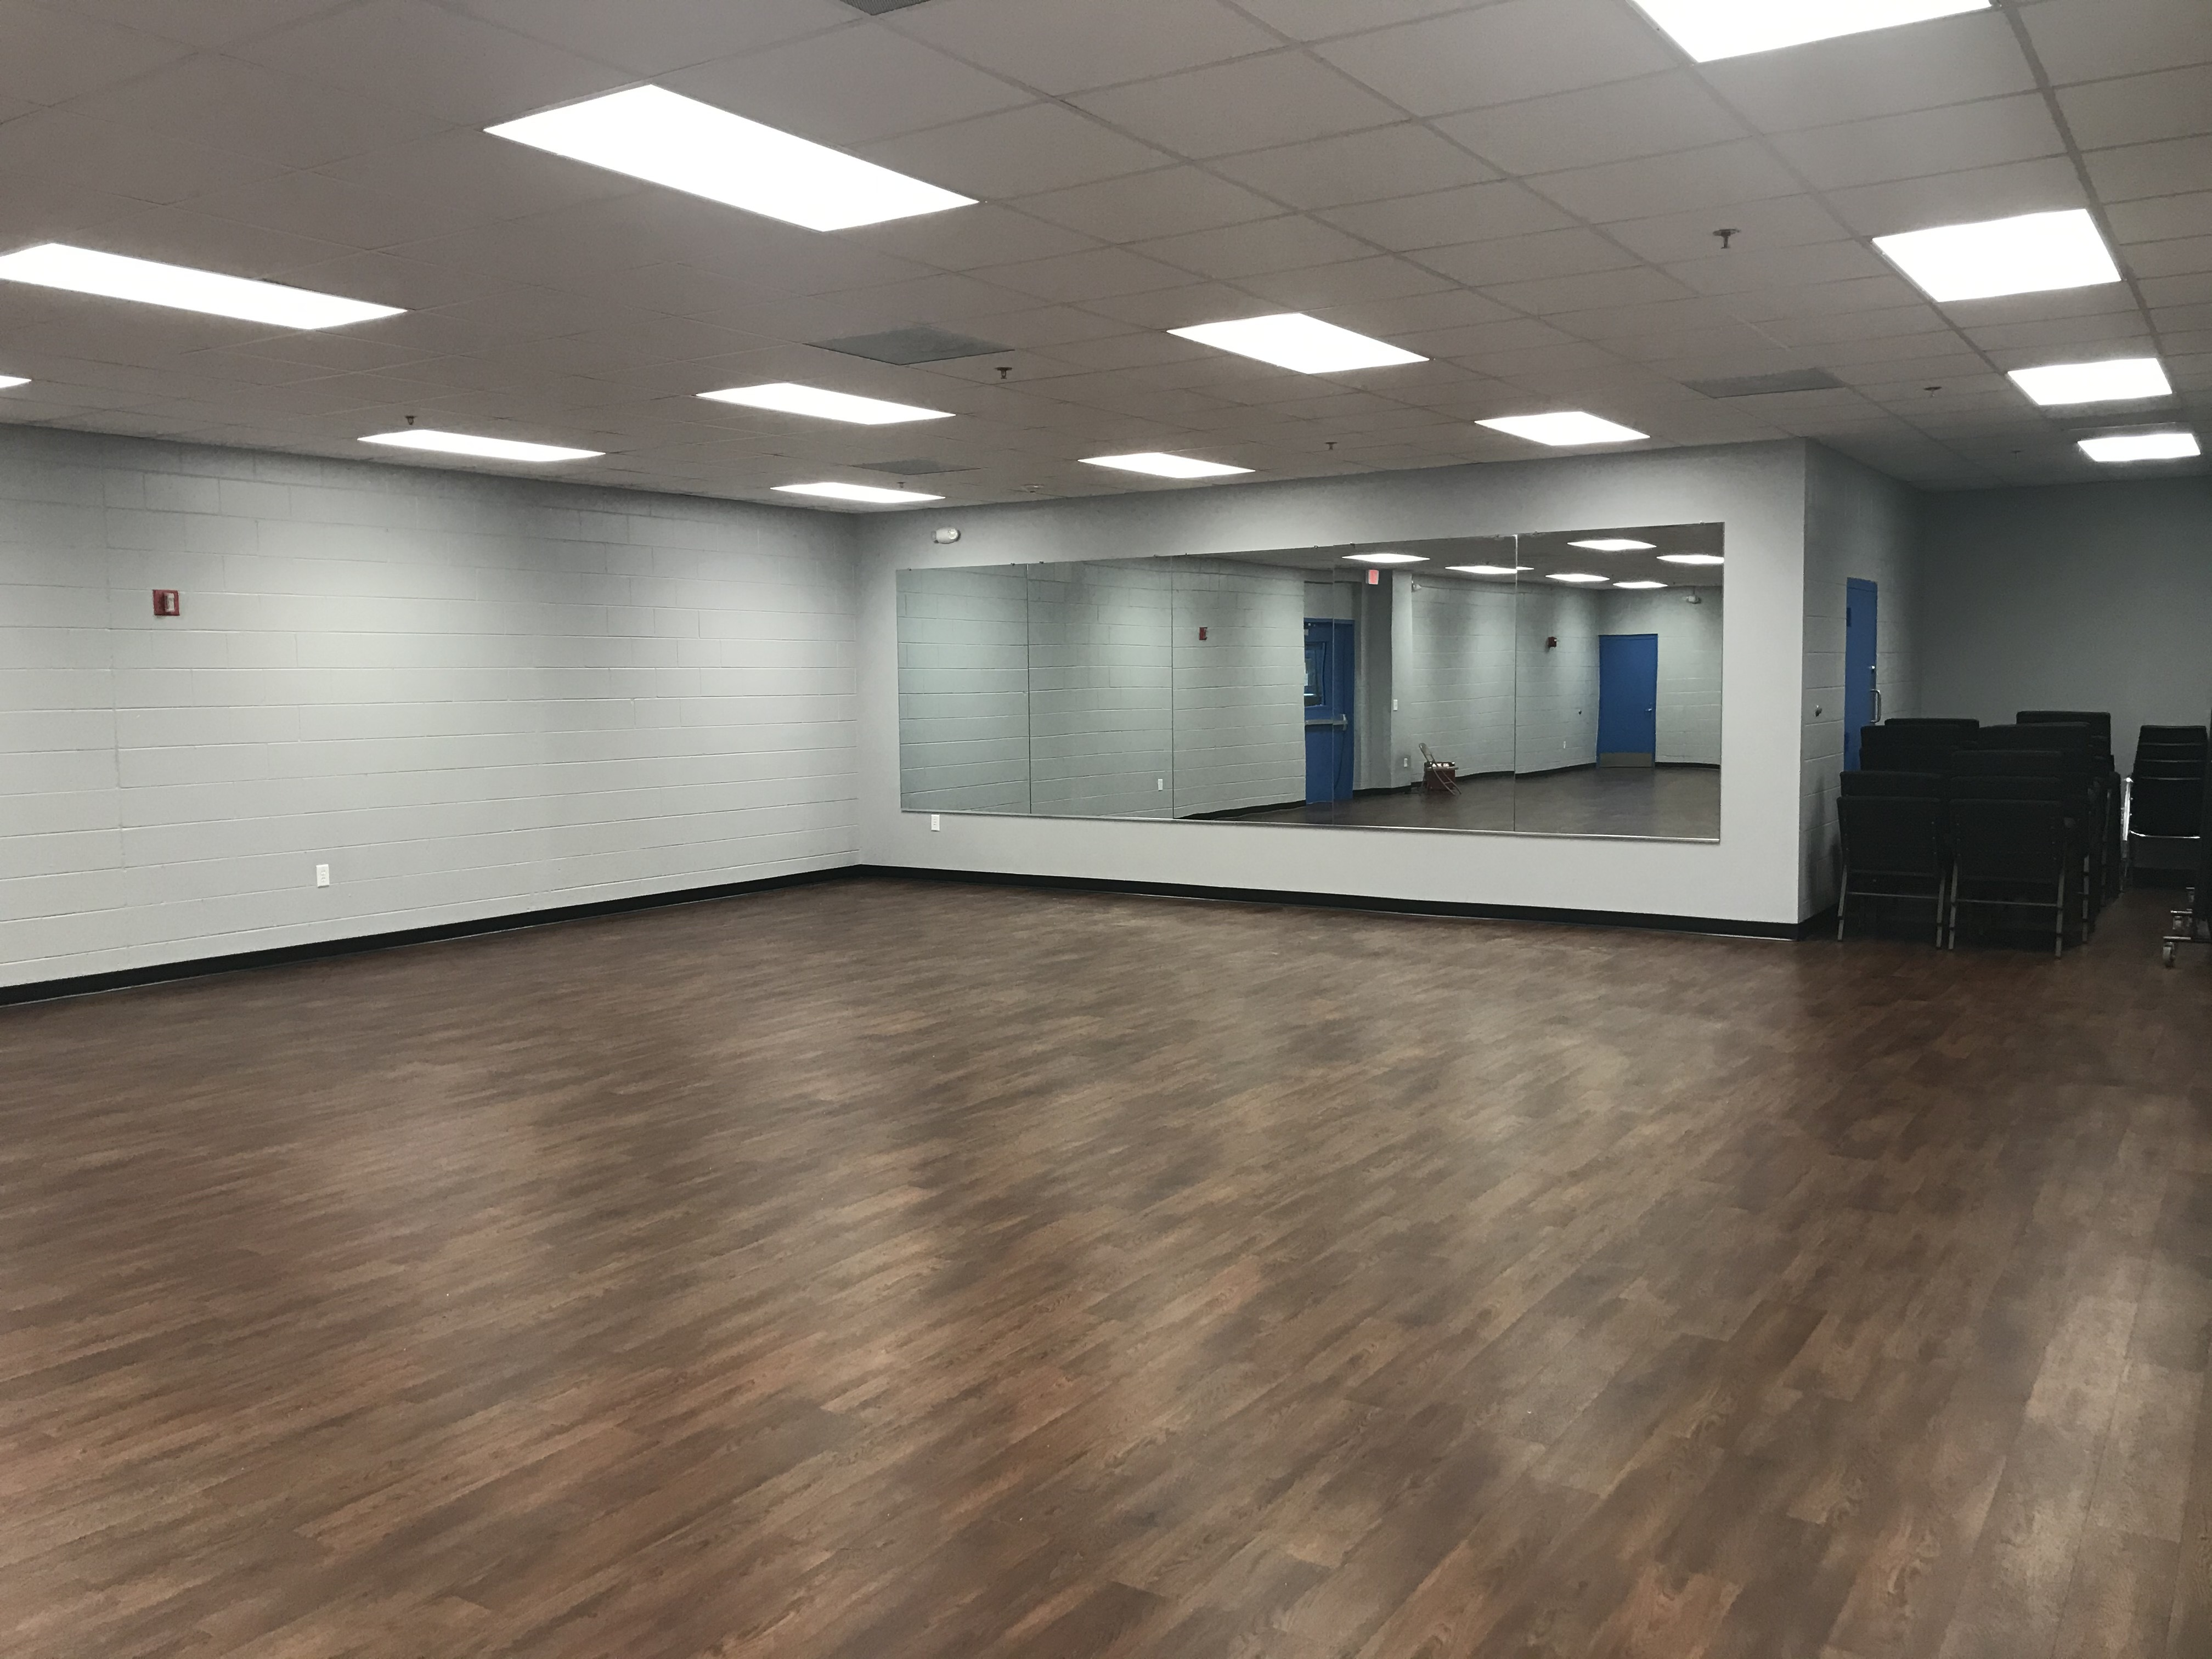 Interior shot of renovated recreational room at the Boys & Girls Clubs of Tampa Bay.